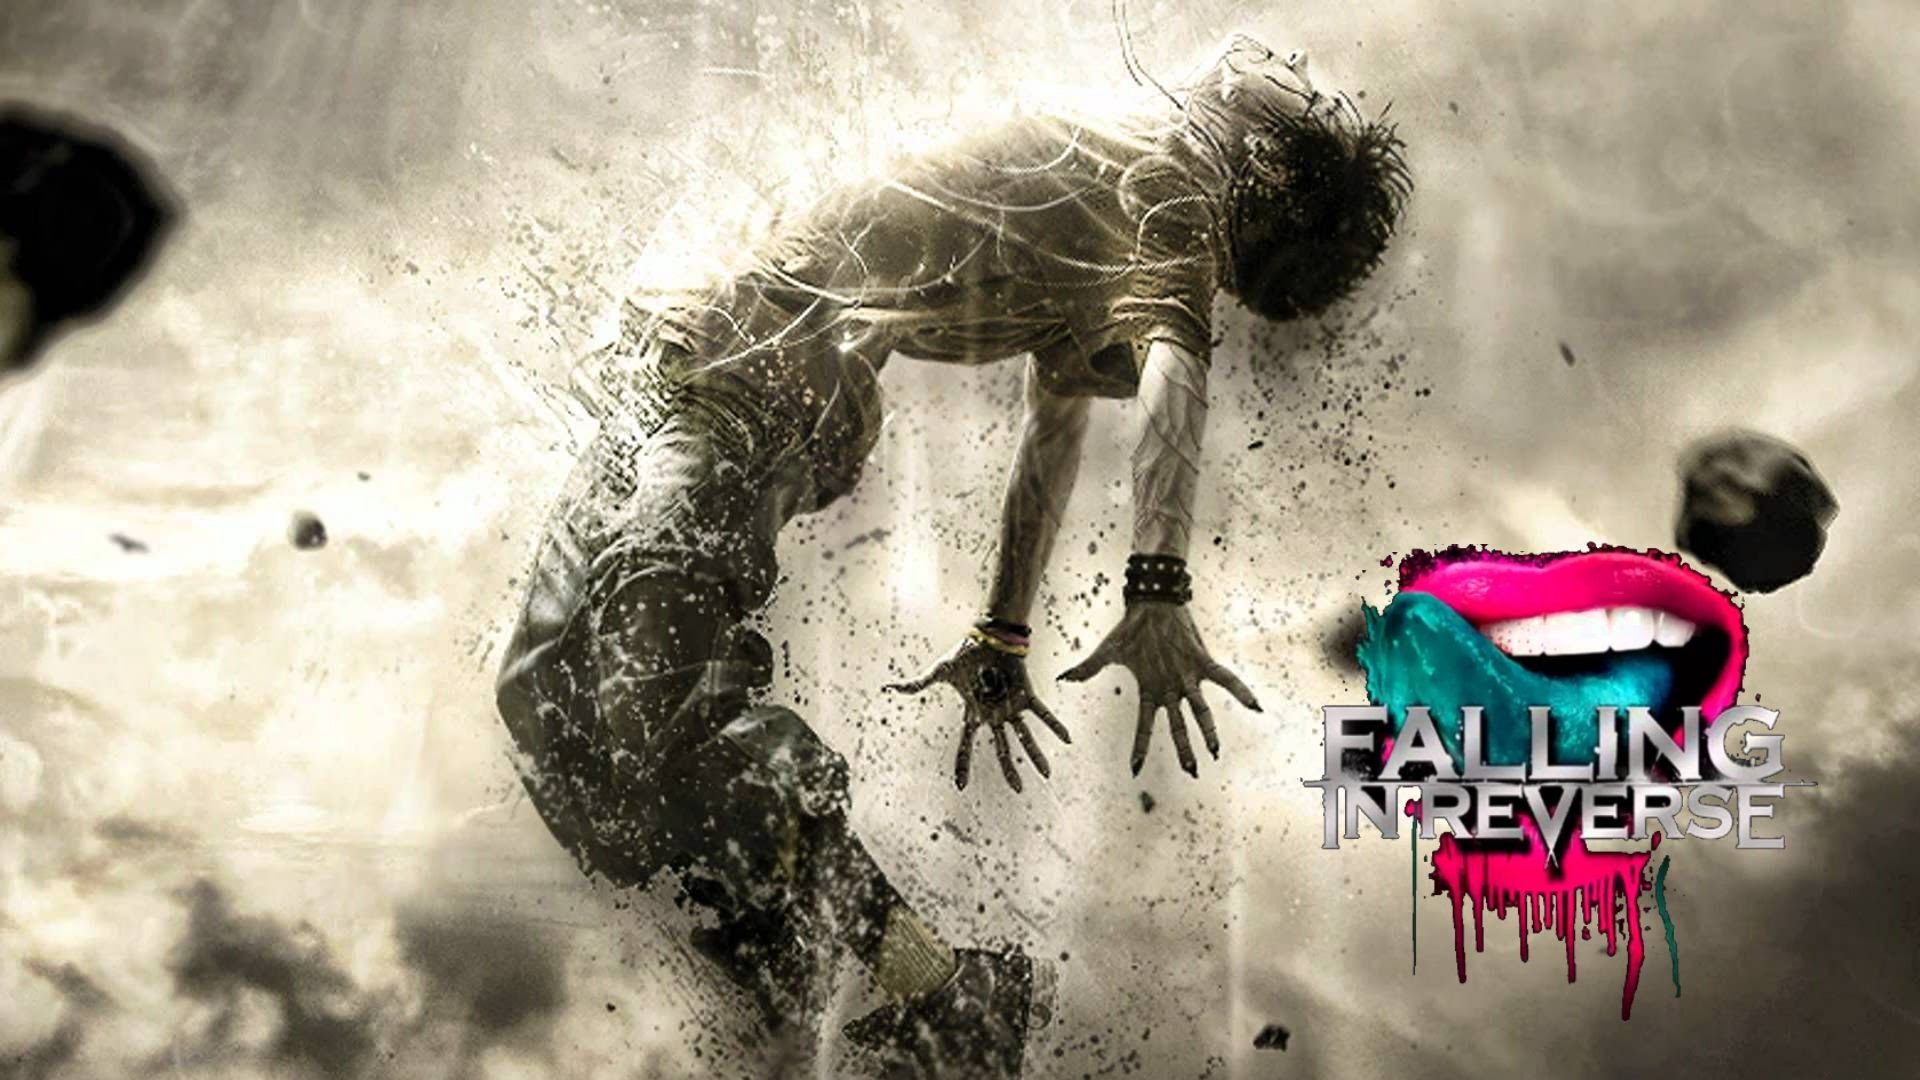 Broken Heart Quotes Wallpapers For Mobile Falling In Reverse Wallpapers